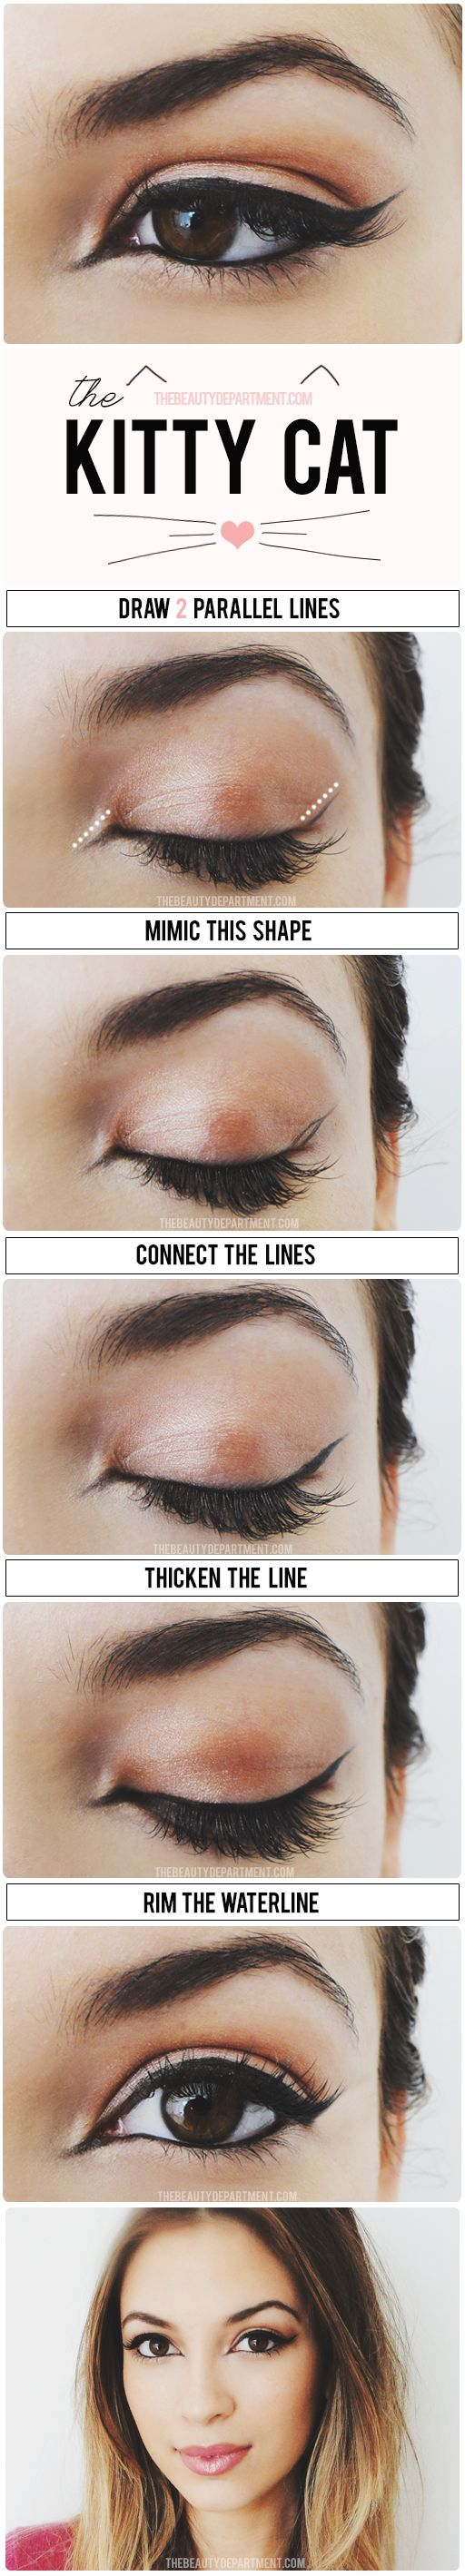 thebeautydepartment.com-kitty-cat-eye.jpg 512×2.838 pixels